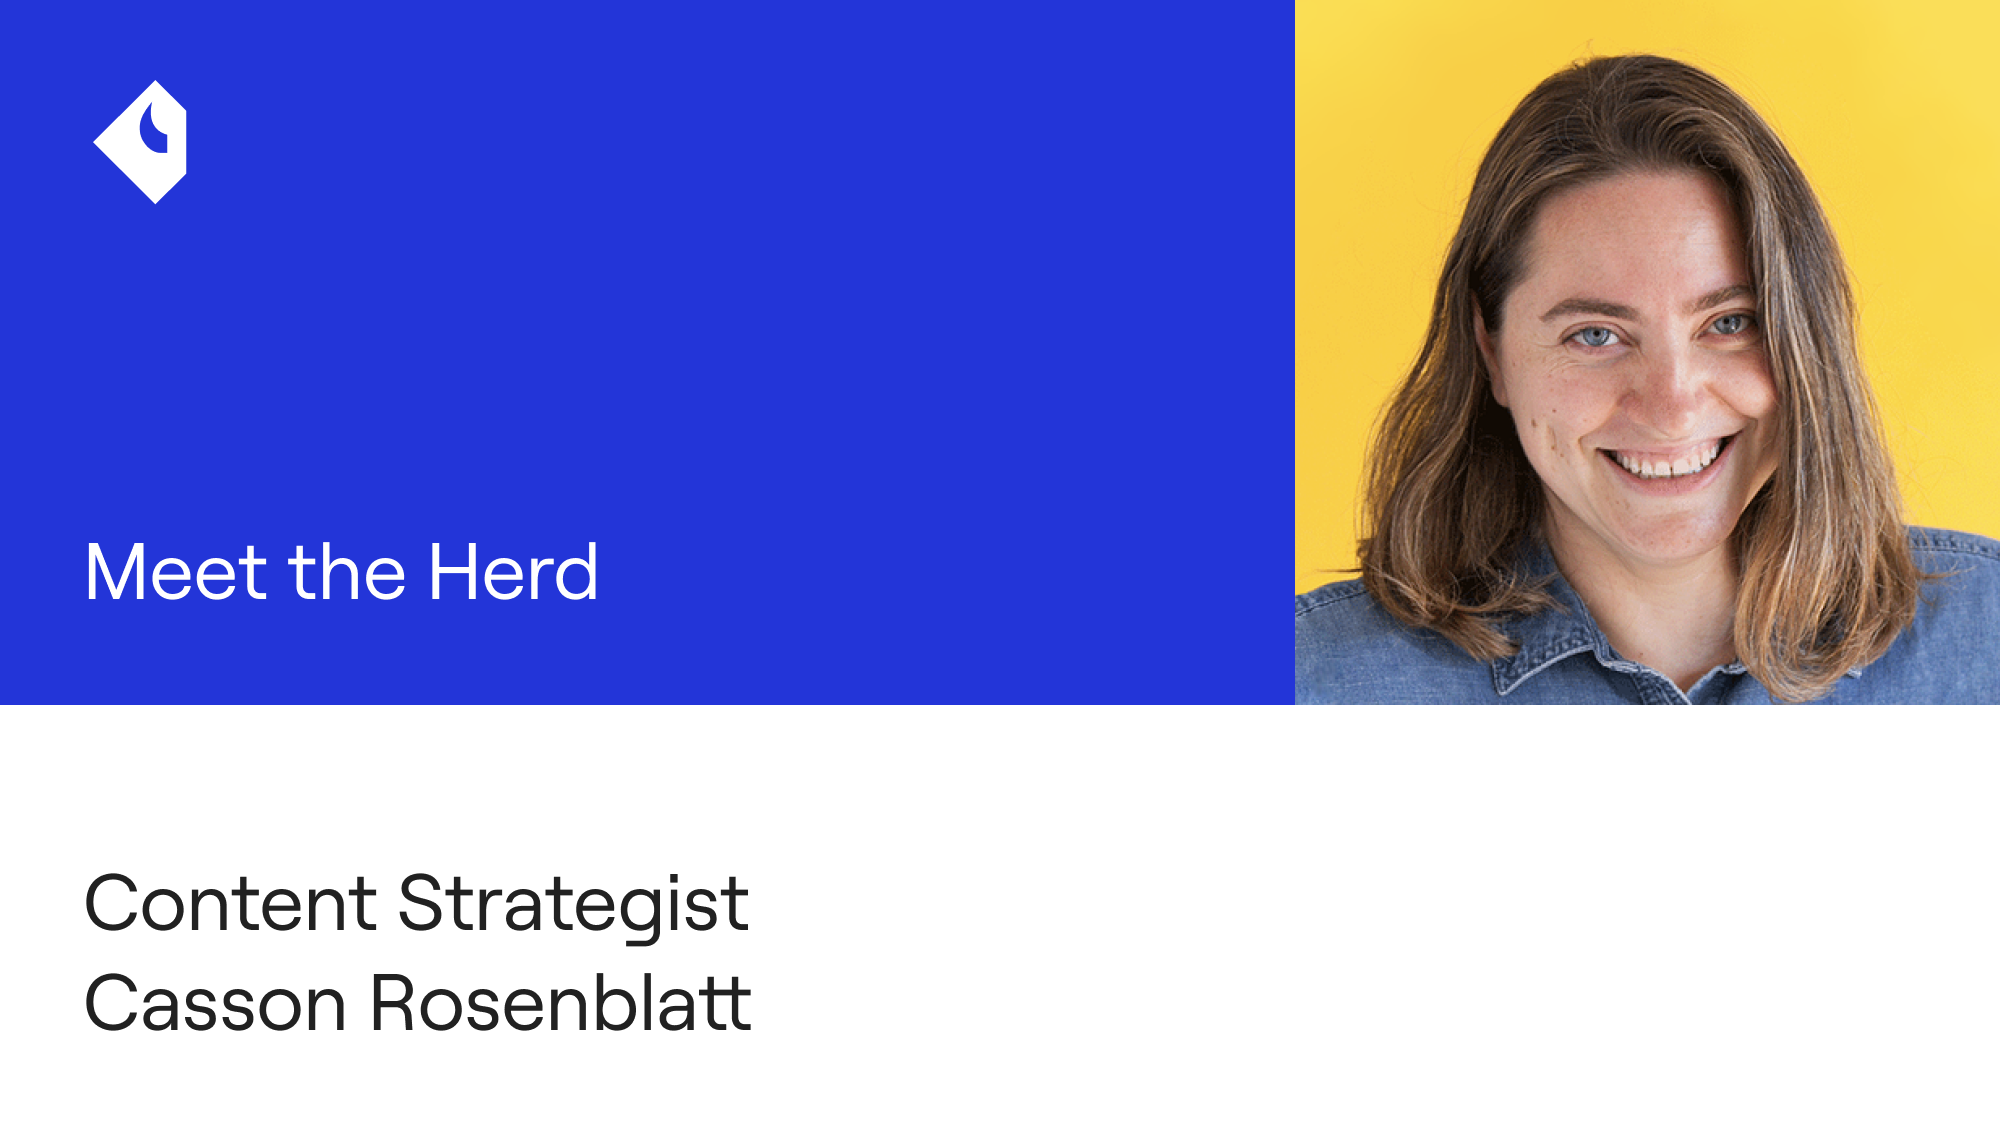 Meet the Herd: Content Strategist Casson Rosenblatt